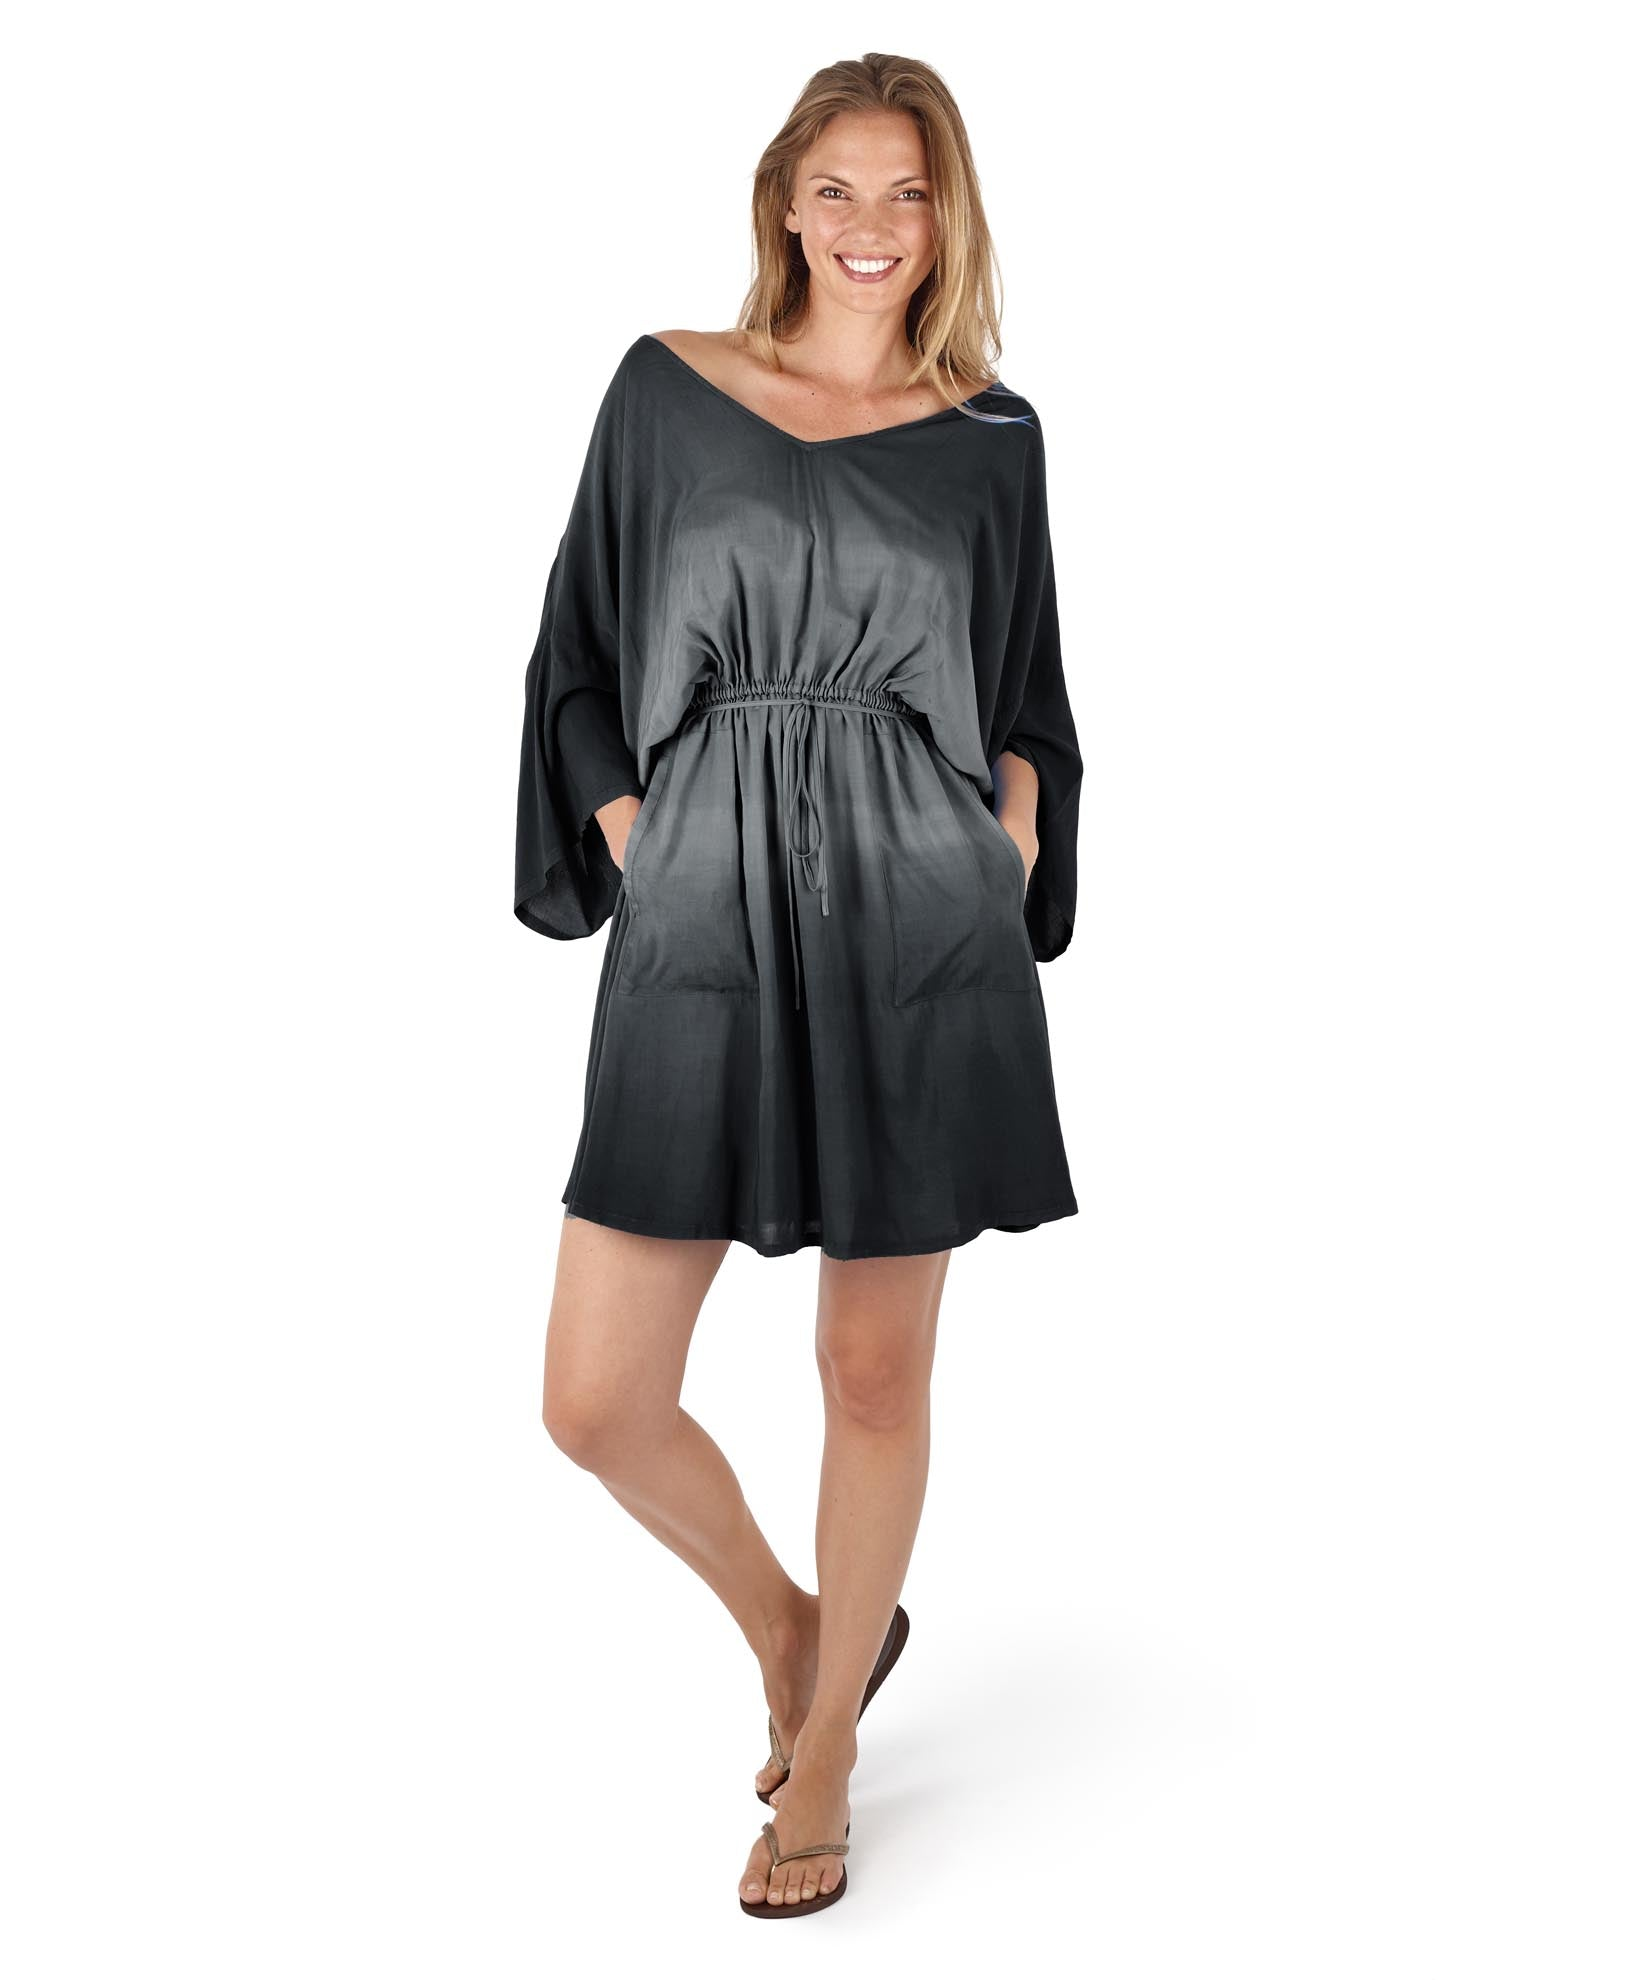 Black - Horizon Ombre Elena Dress